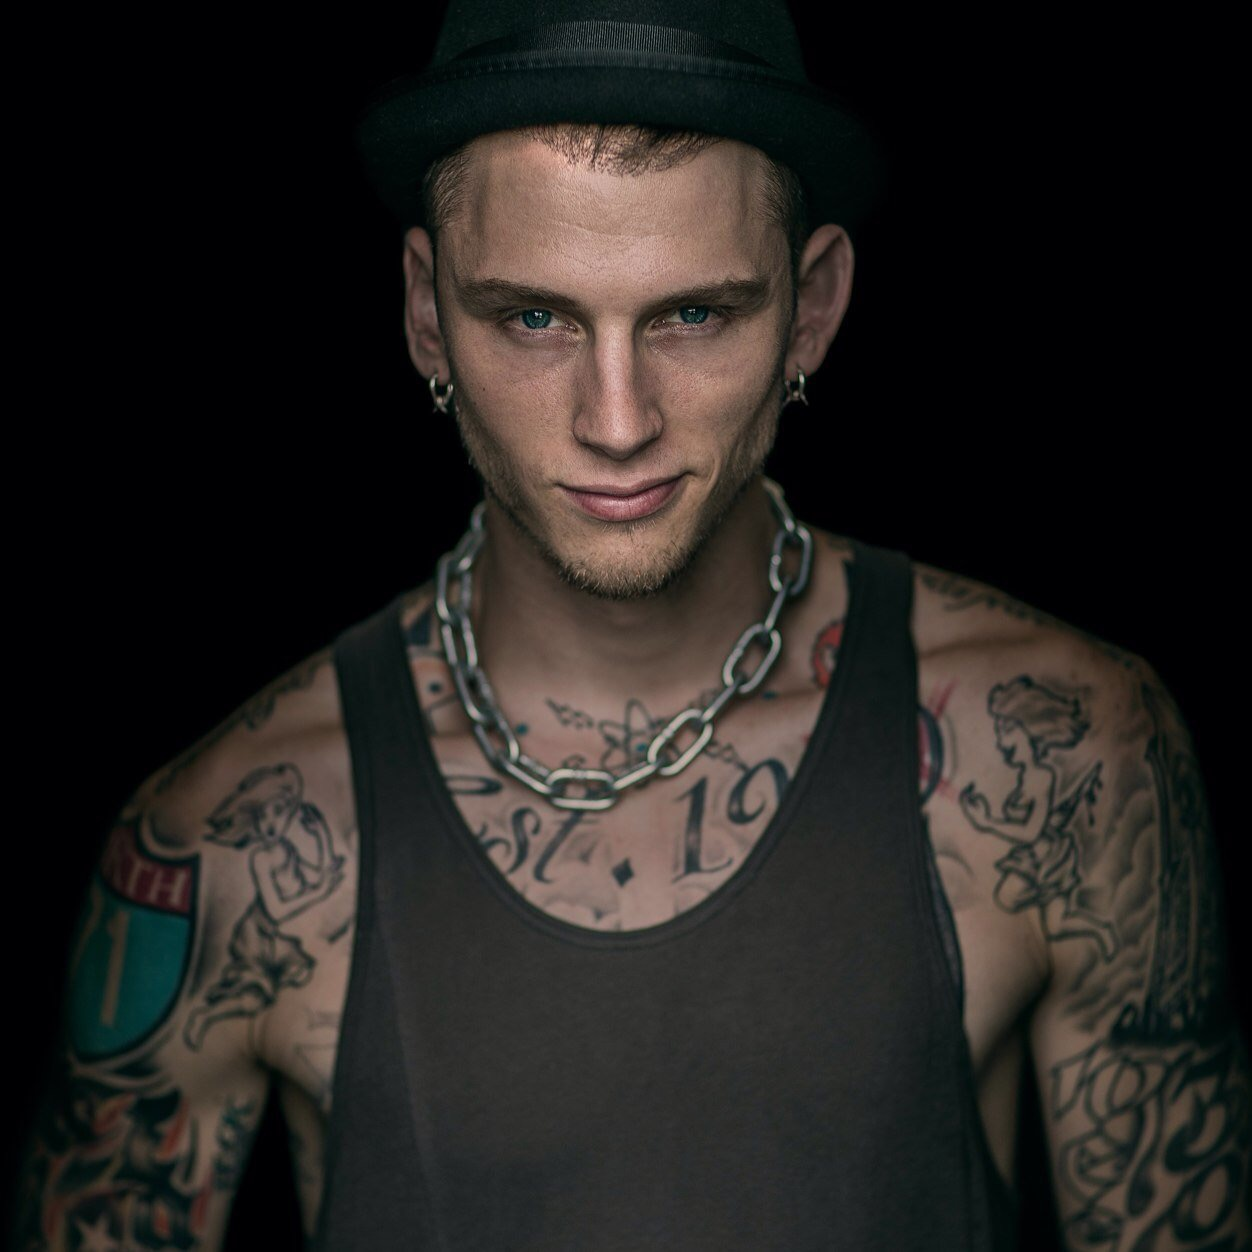 Machine Gun Kelly More Than A Man A Movement Allison